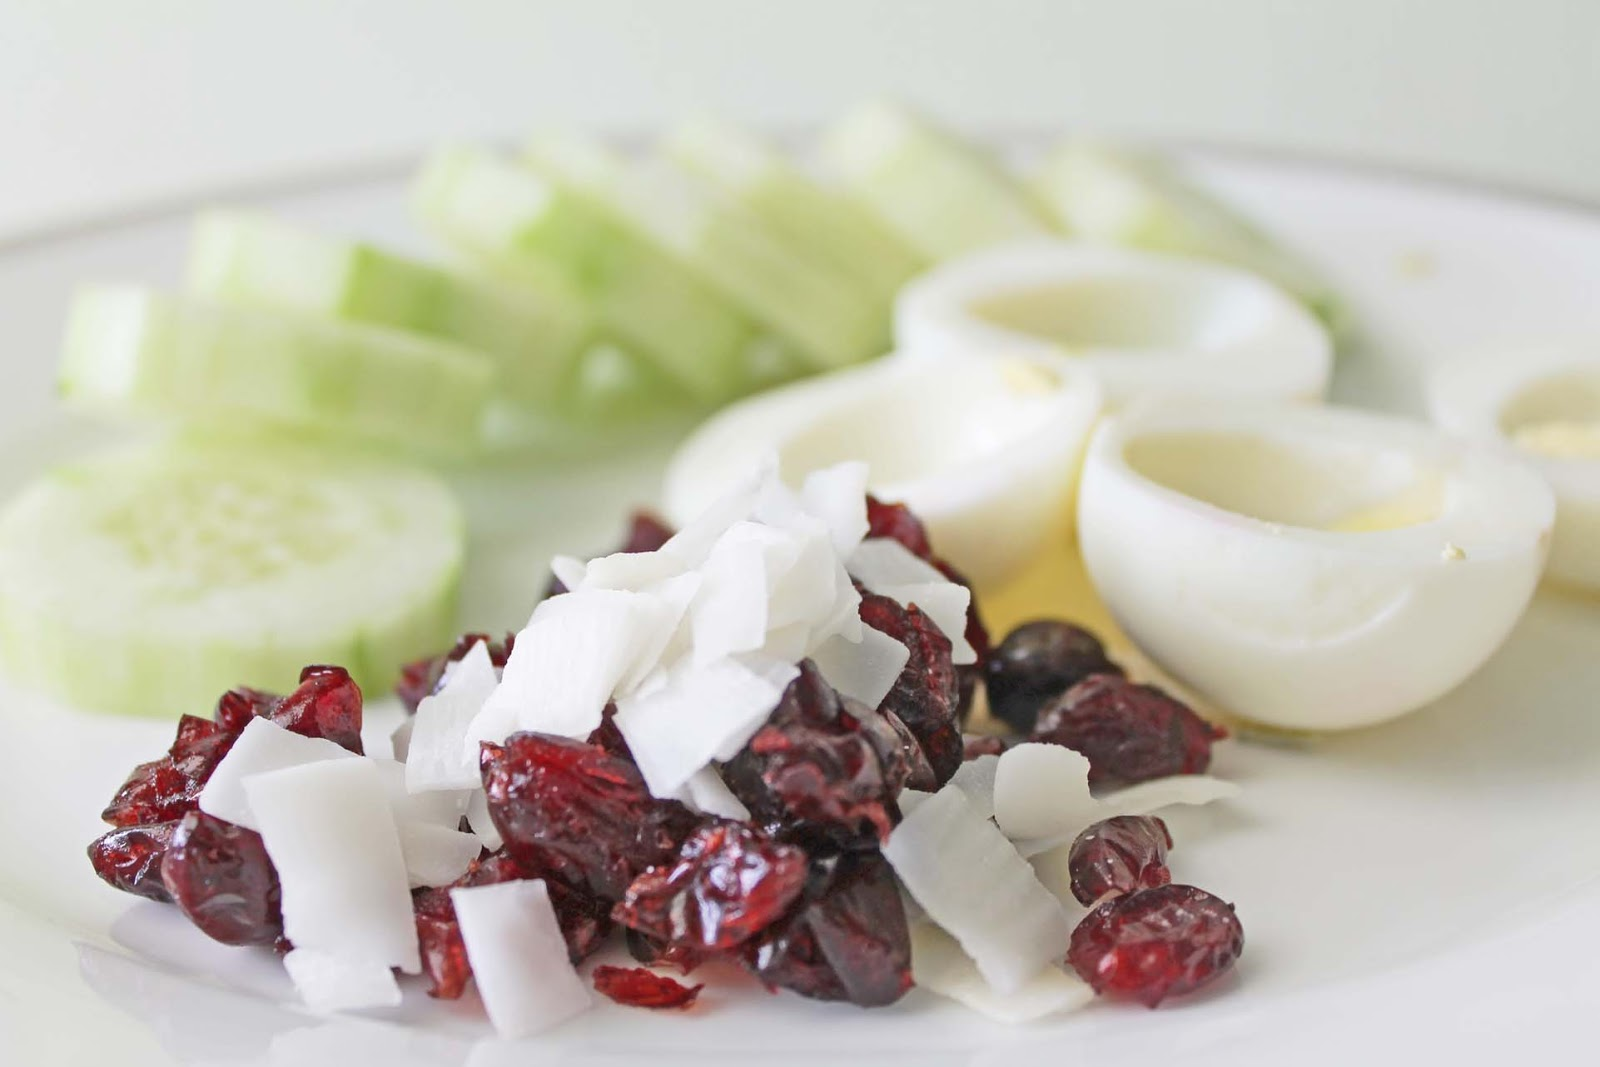 Healthy Snacks For Work Daily Recommendations 13